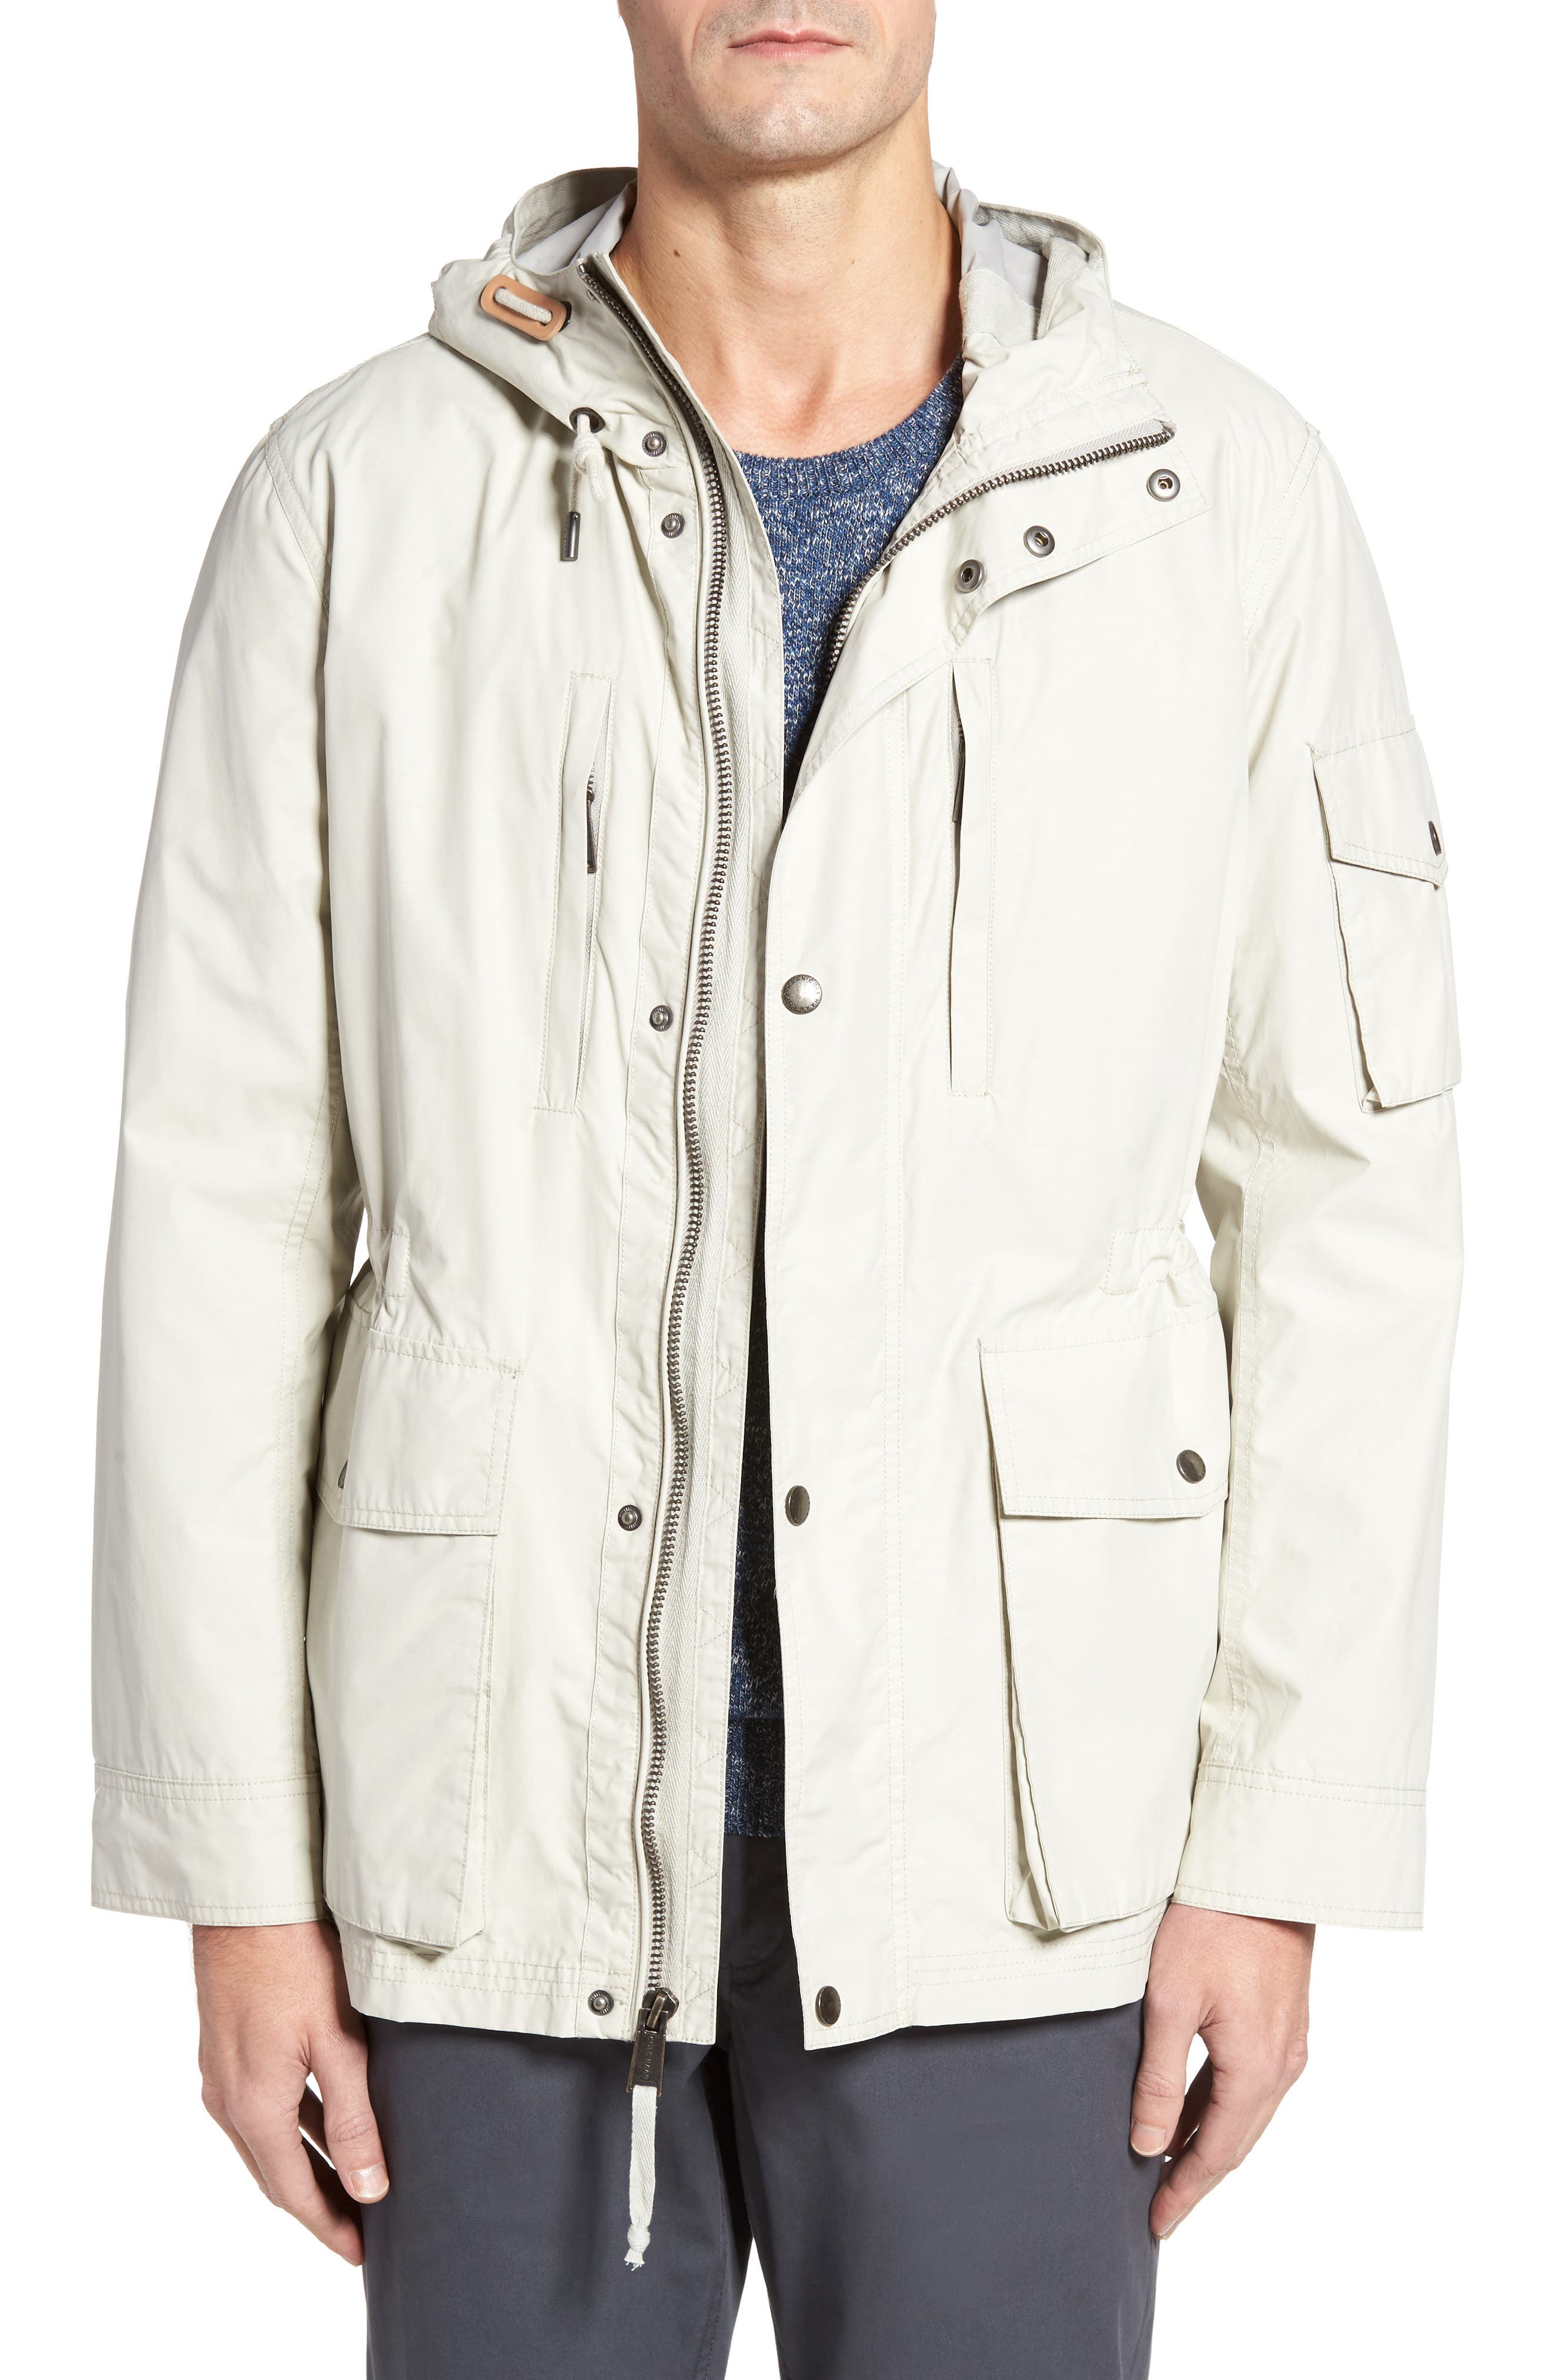 COLE HAAN,                             Water Repellent Hooded Jacket,                             Main thumbnail 1, color,                             STONE